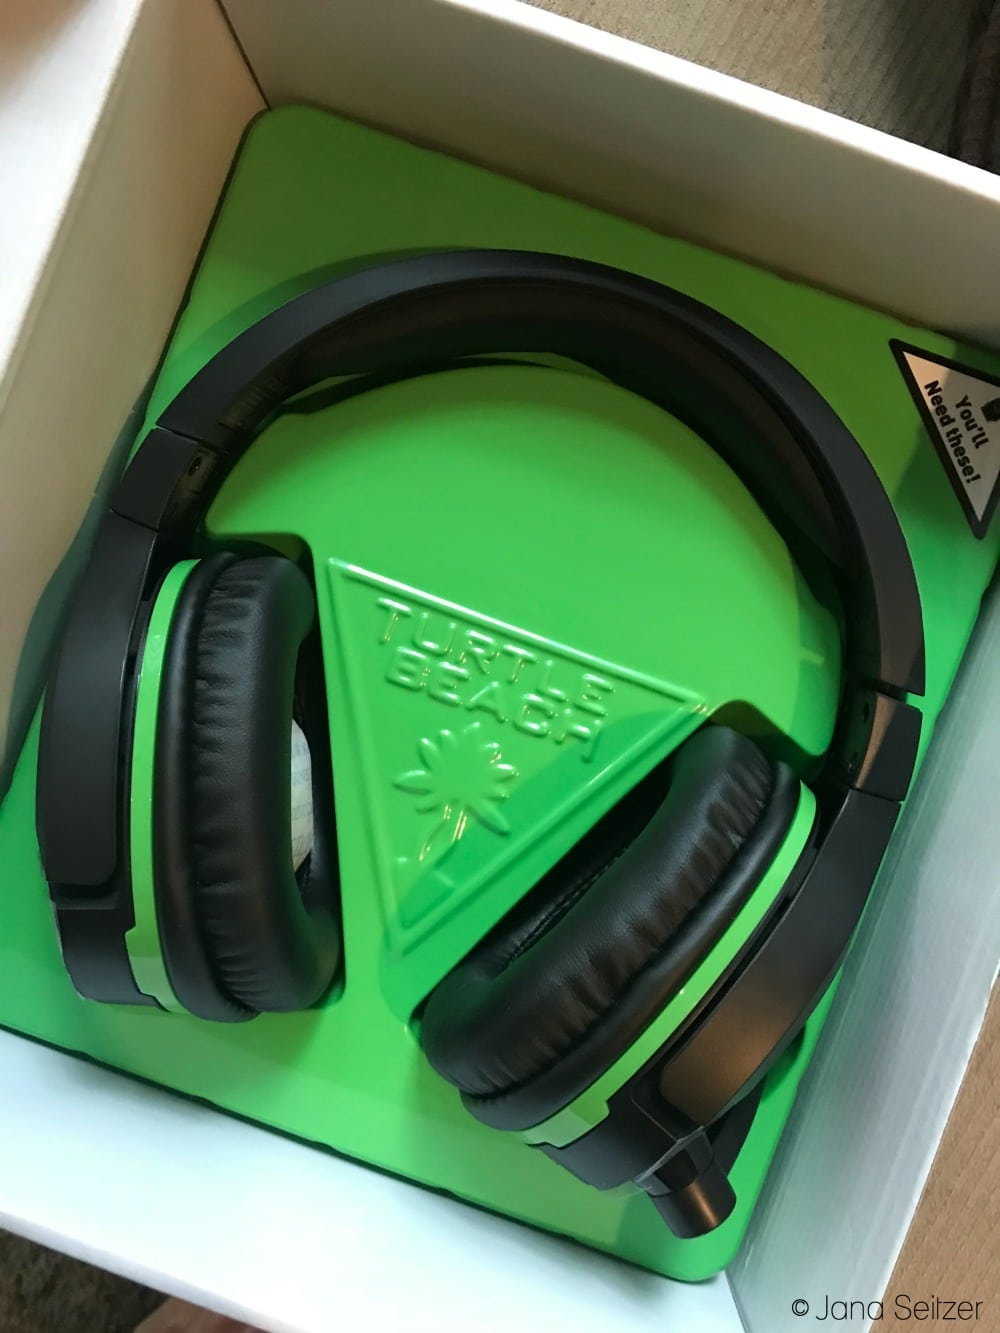 The Perfect Gift for Gamers - Turtle Beach Stealth 700 Gaming Headset for Xbox One